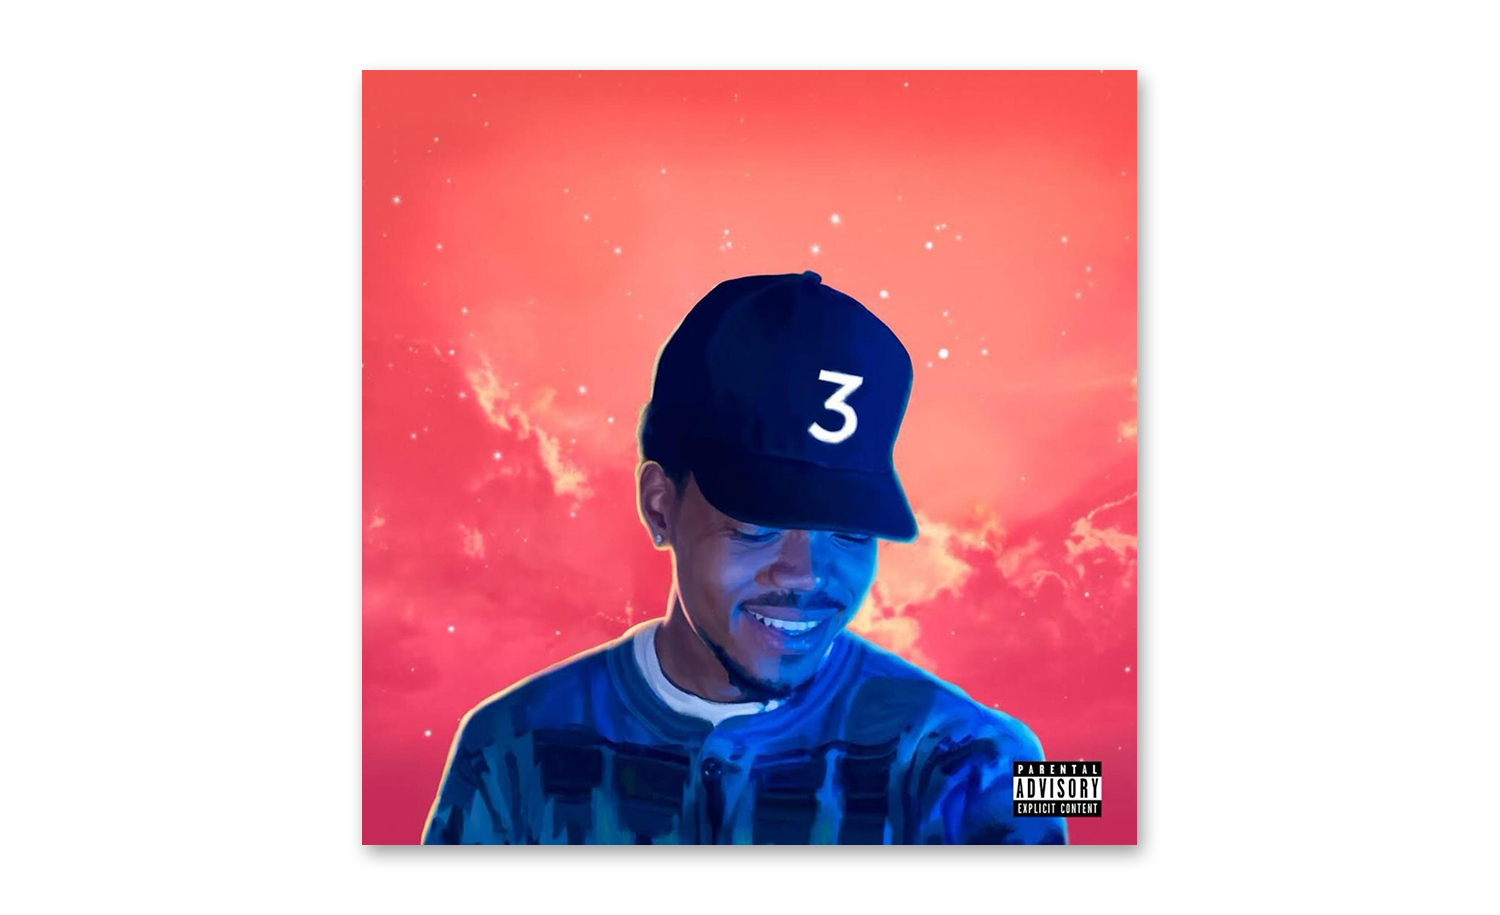 Coloring book download link chance the rapper - Coloring Book Download Link Chance The Rapper 2